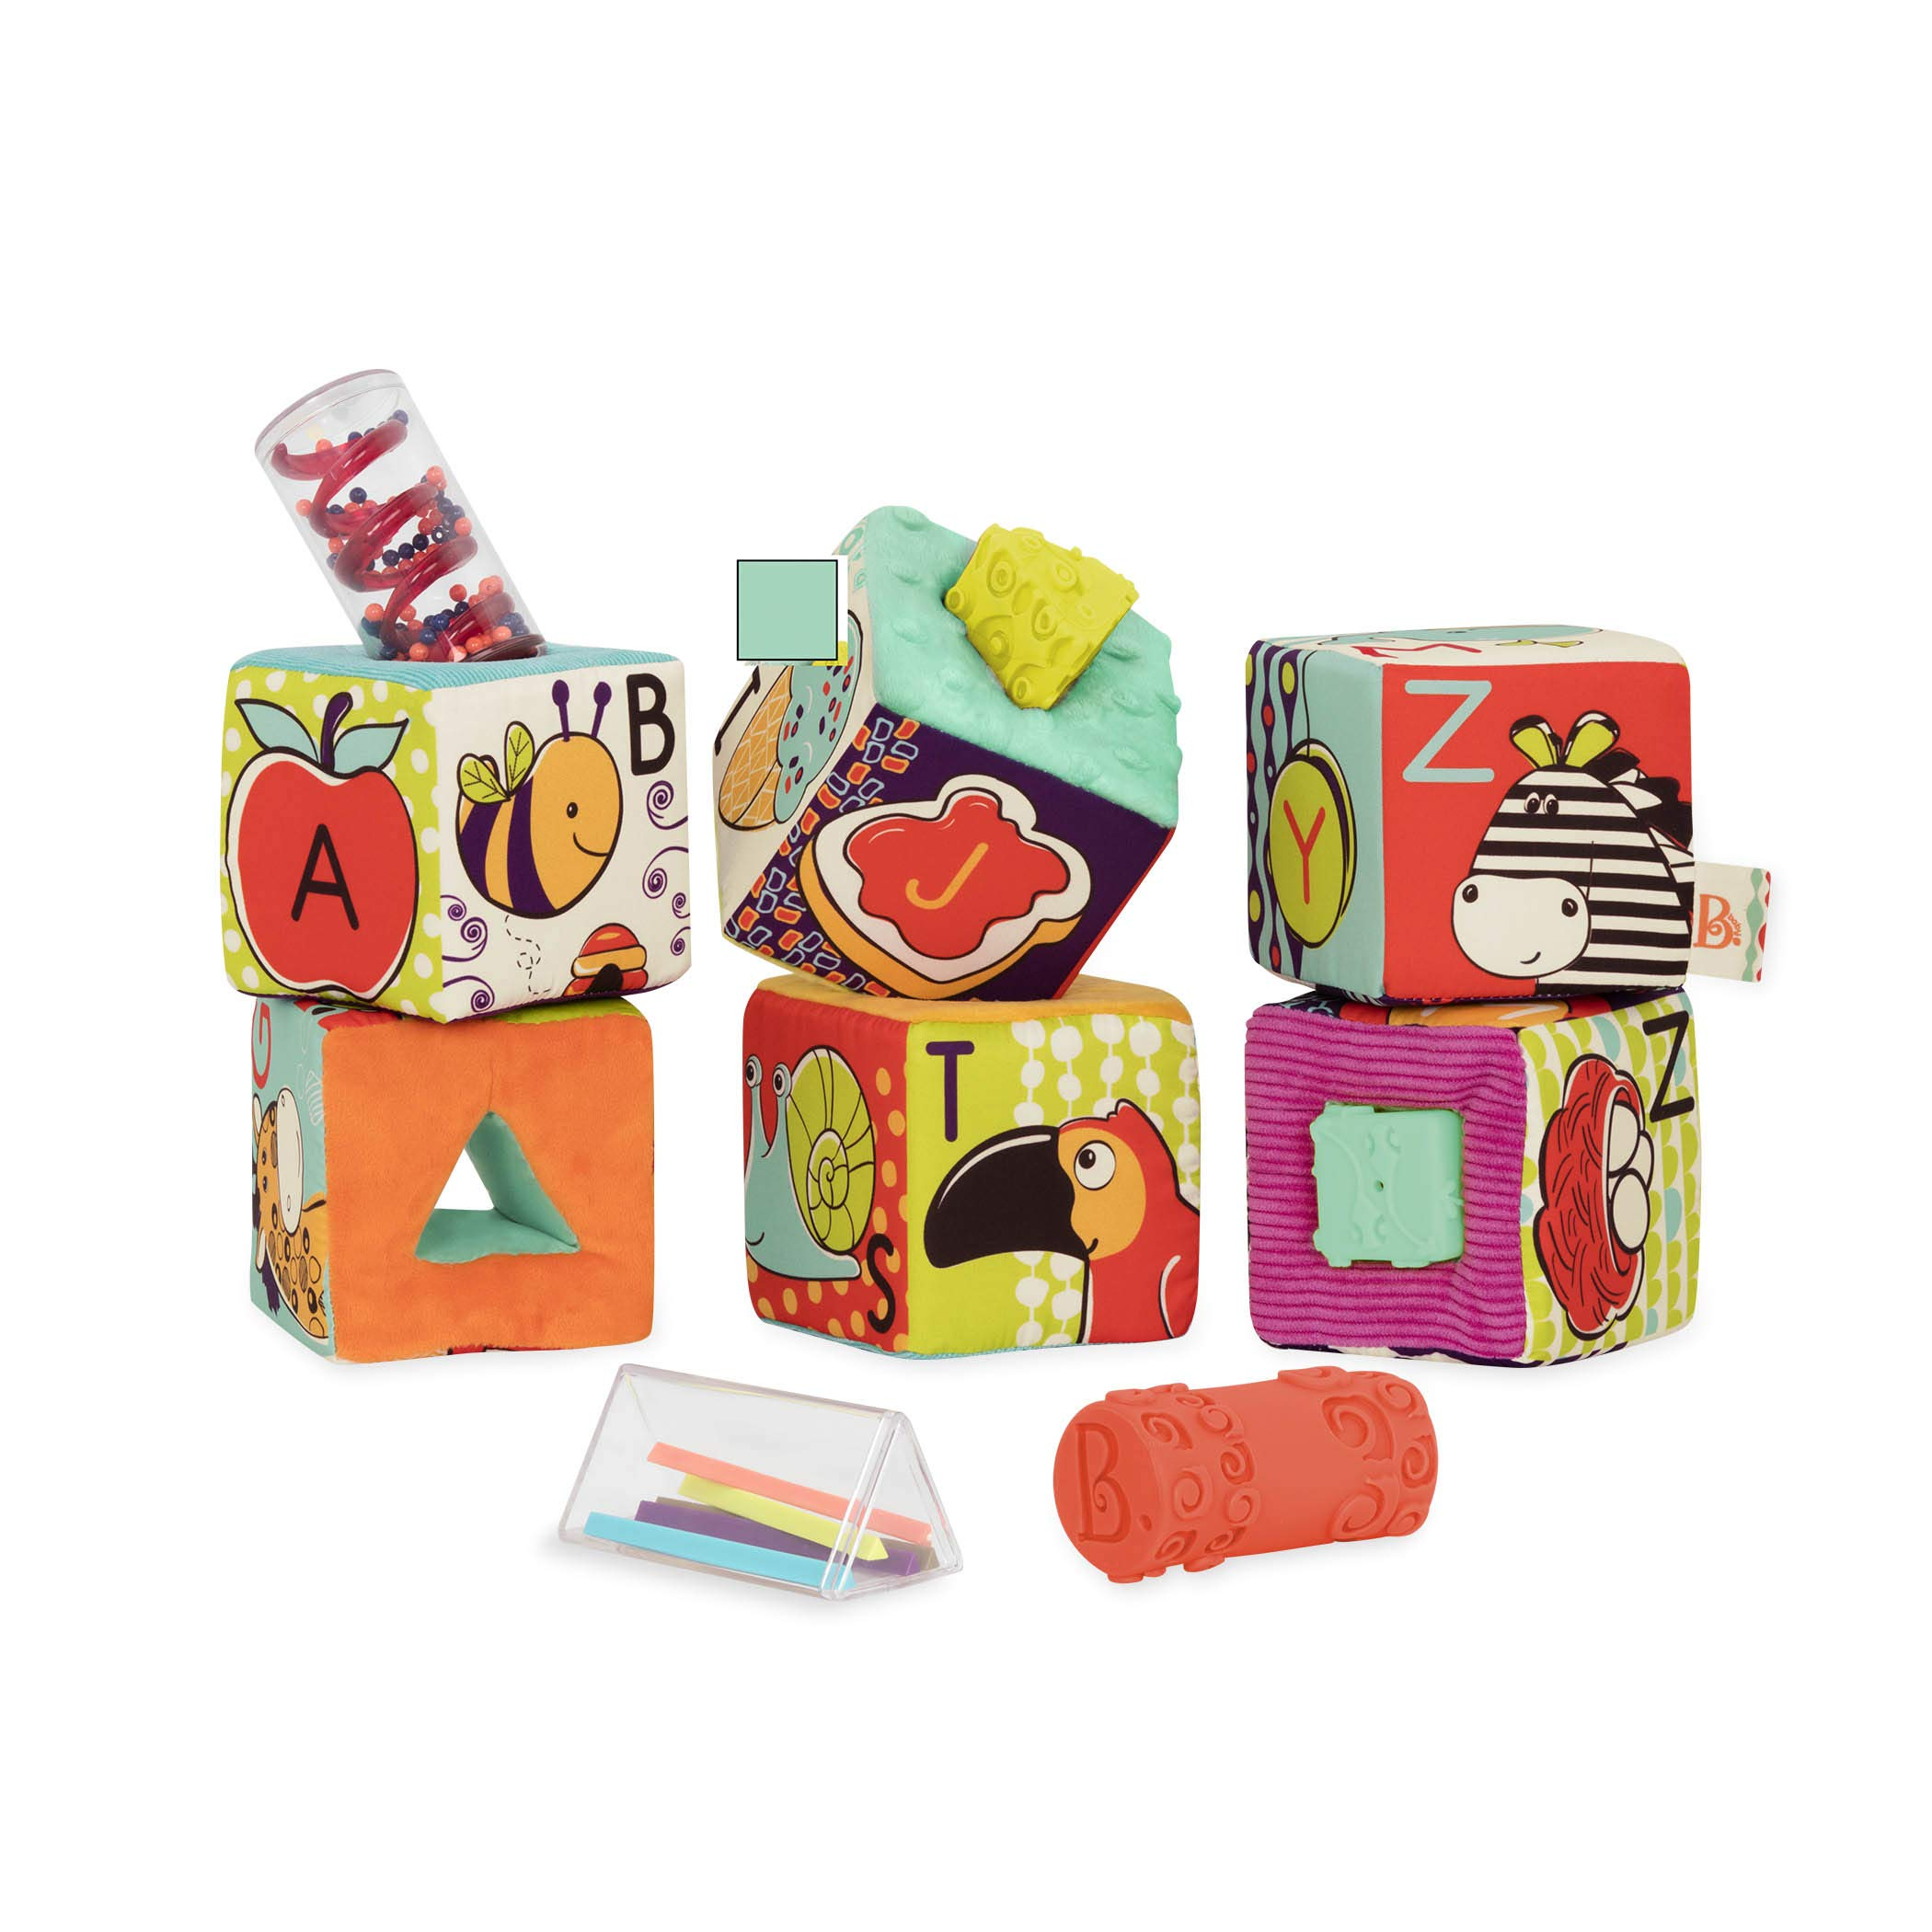 B. toys by Battat ABC Block Party Baby Blocks – Soft Fabric Building Blocks for Toddlers – Educational Alphabet Blocks with 6 Textured Toy Blocks & 5 Shapes – Grab & Stack Blocks, Multicolored